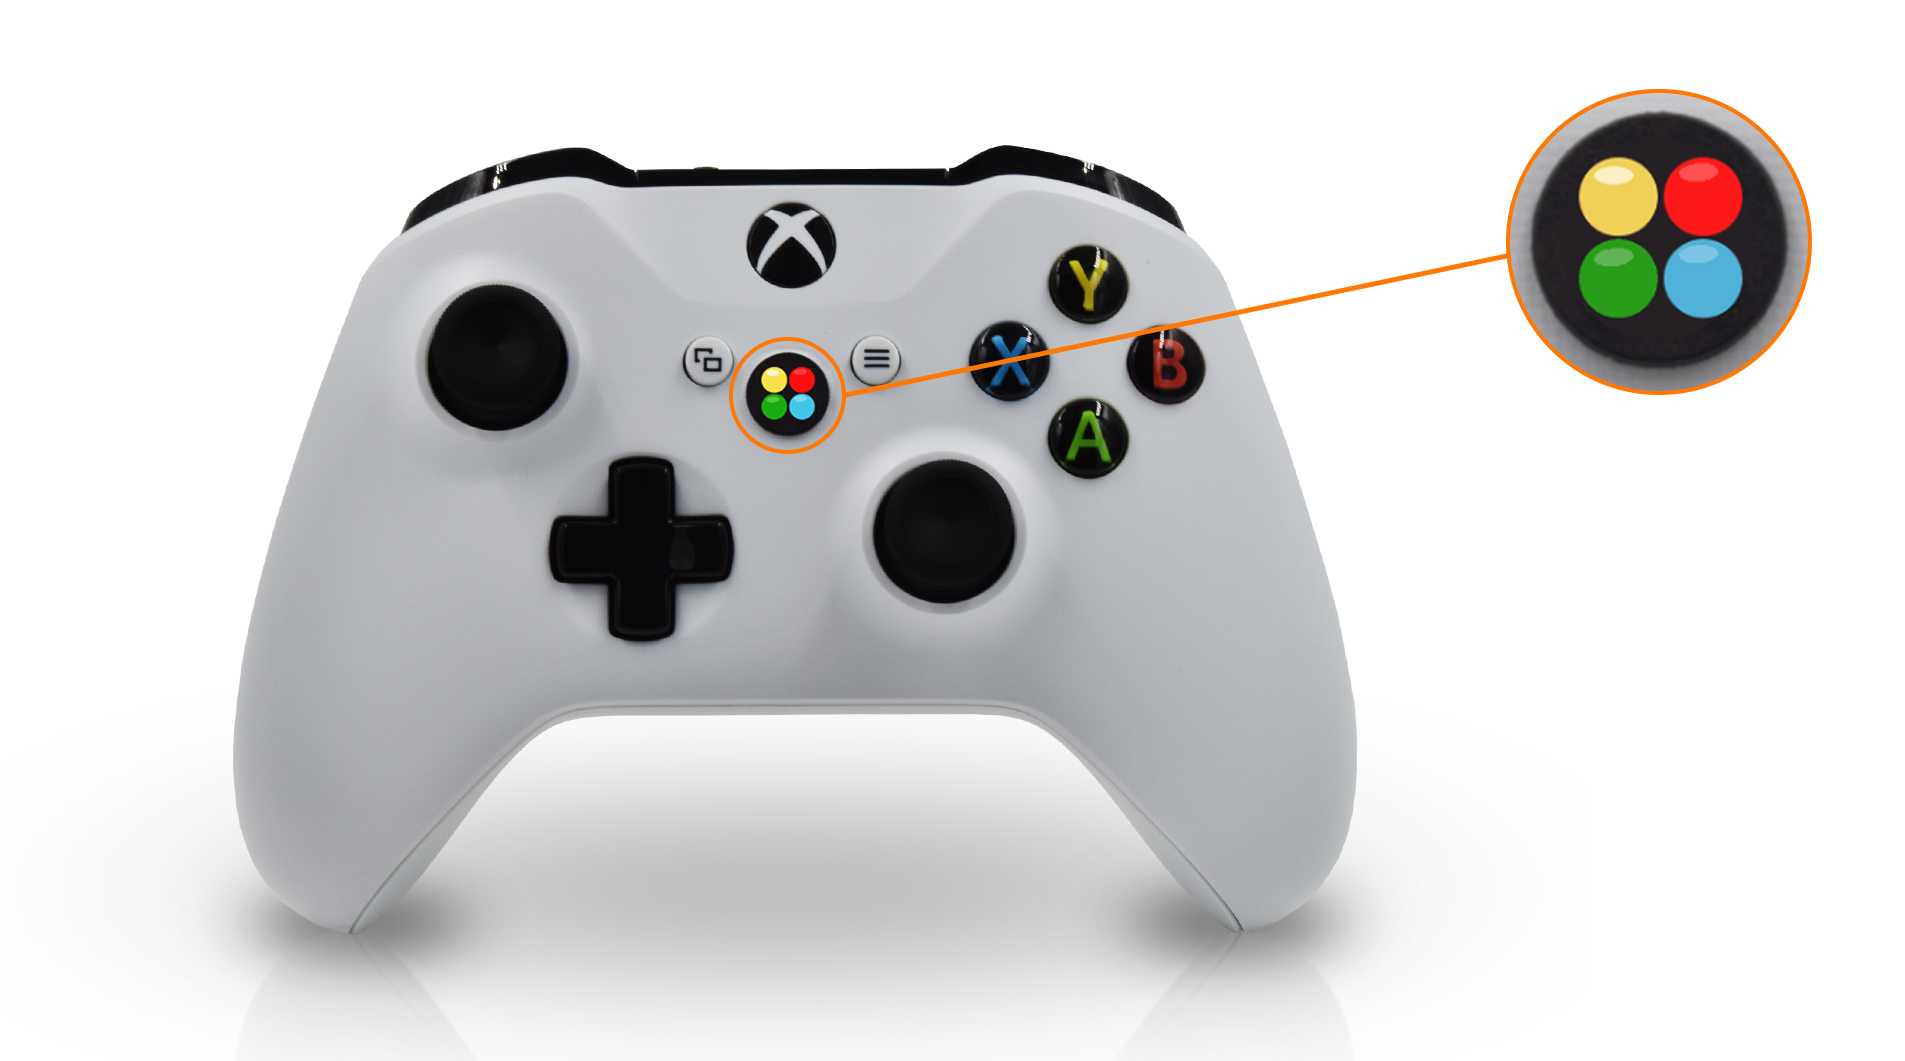 LED Indicator on Xbox One S Modded Controller